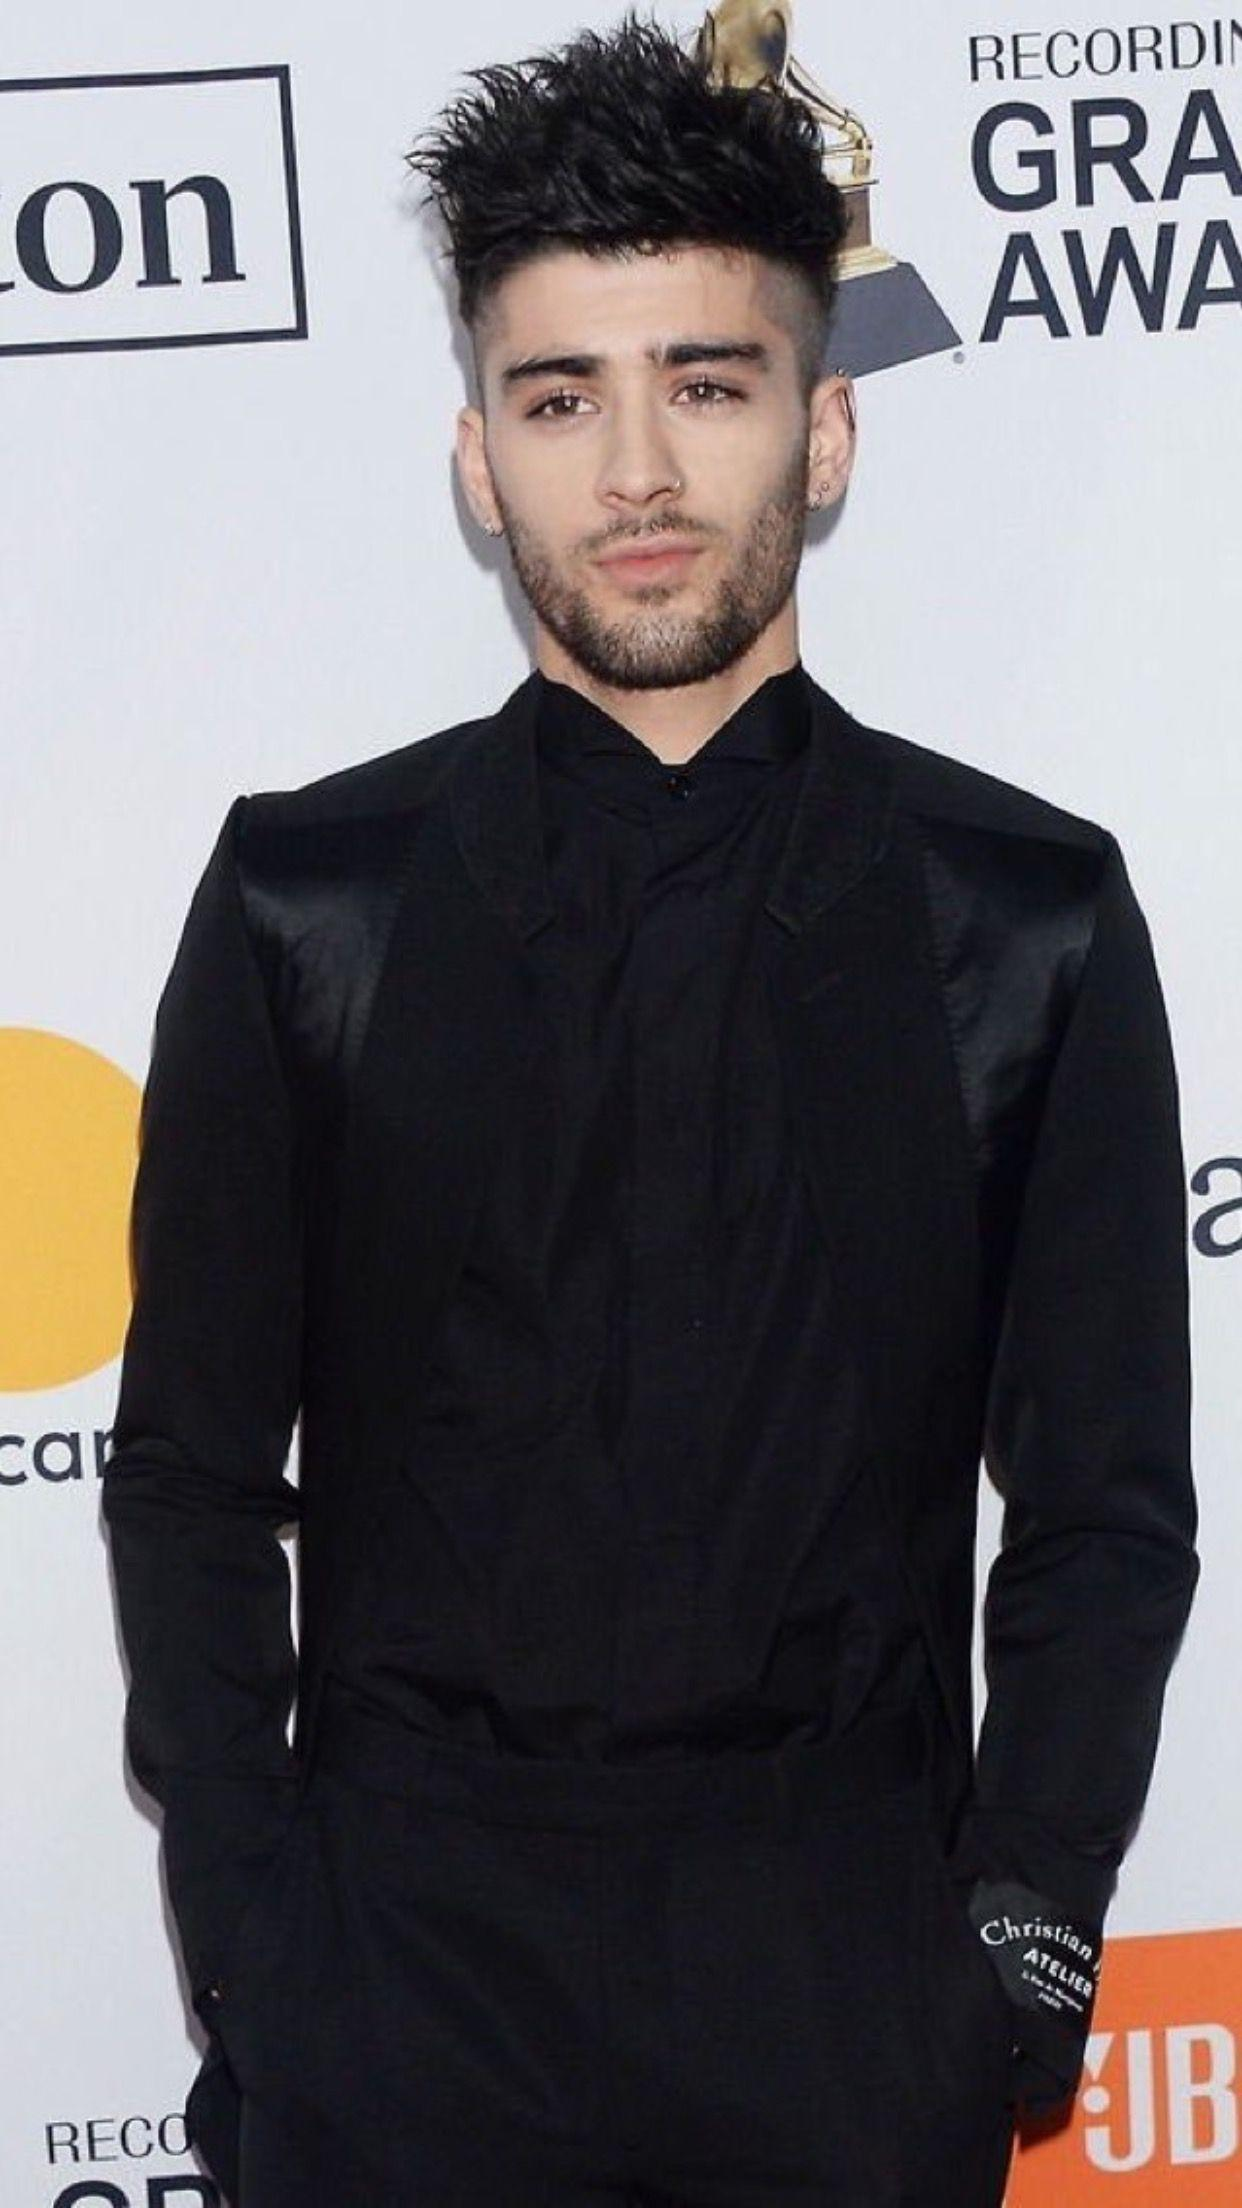 Zayn Malik Lockscreen/Wallpaper/Fondo de Pantalla (Pre-Grammy Awards ...